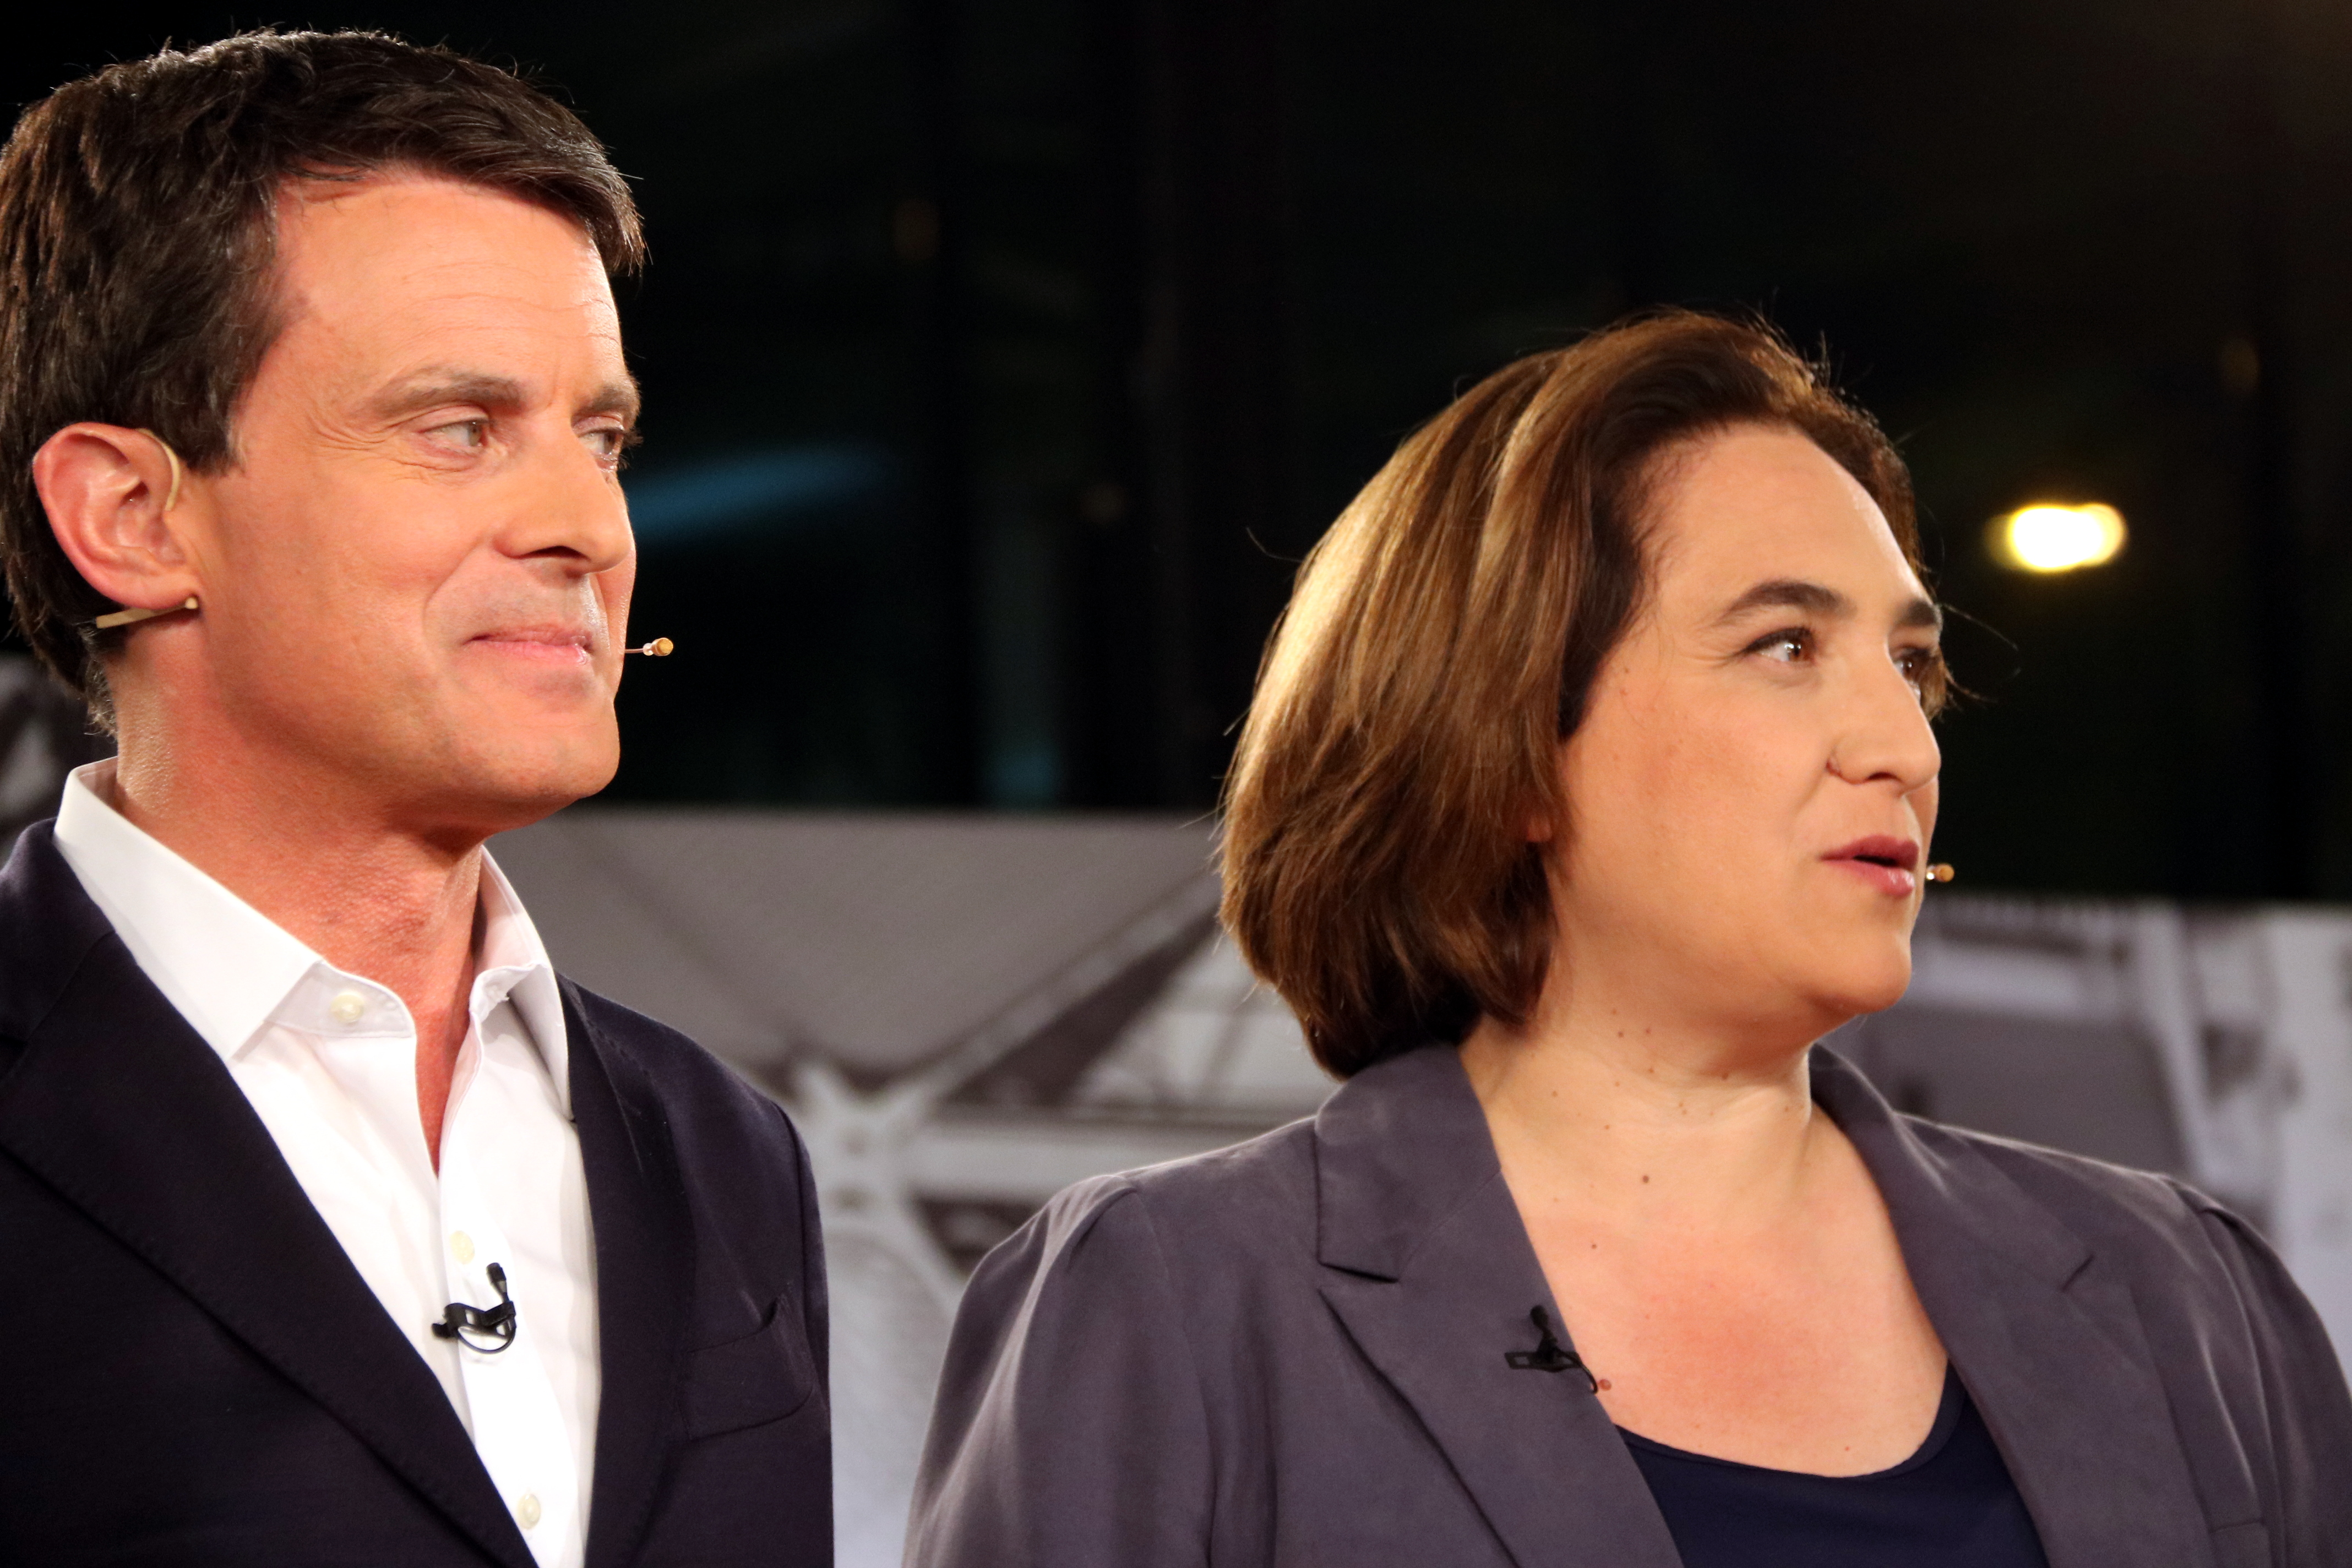 Barcelona mayor Ada Colau (right) and Ciutadans' candidate in the local election, Manuel Valls (by Nazaret Romero)